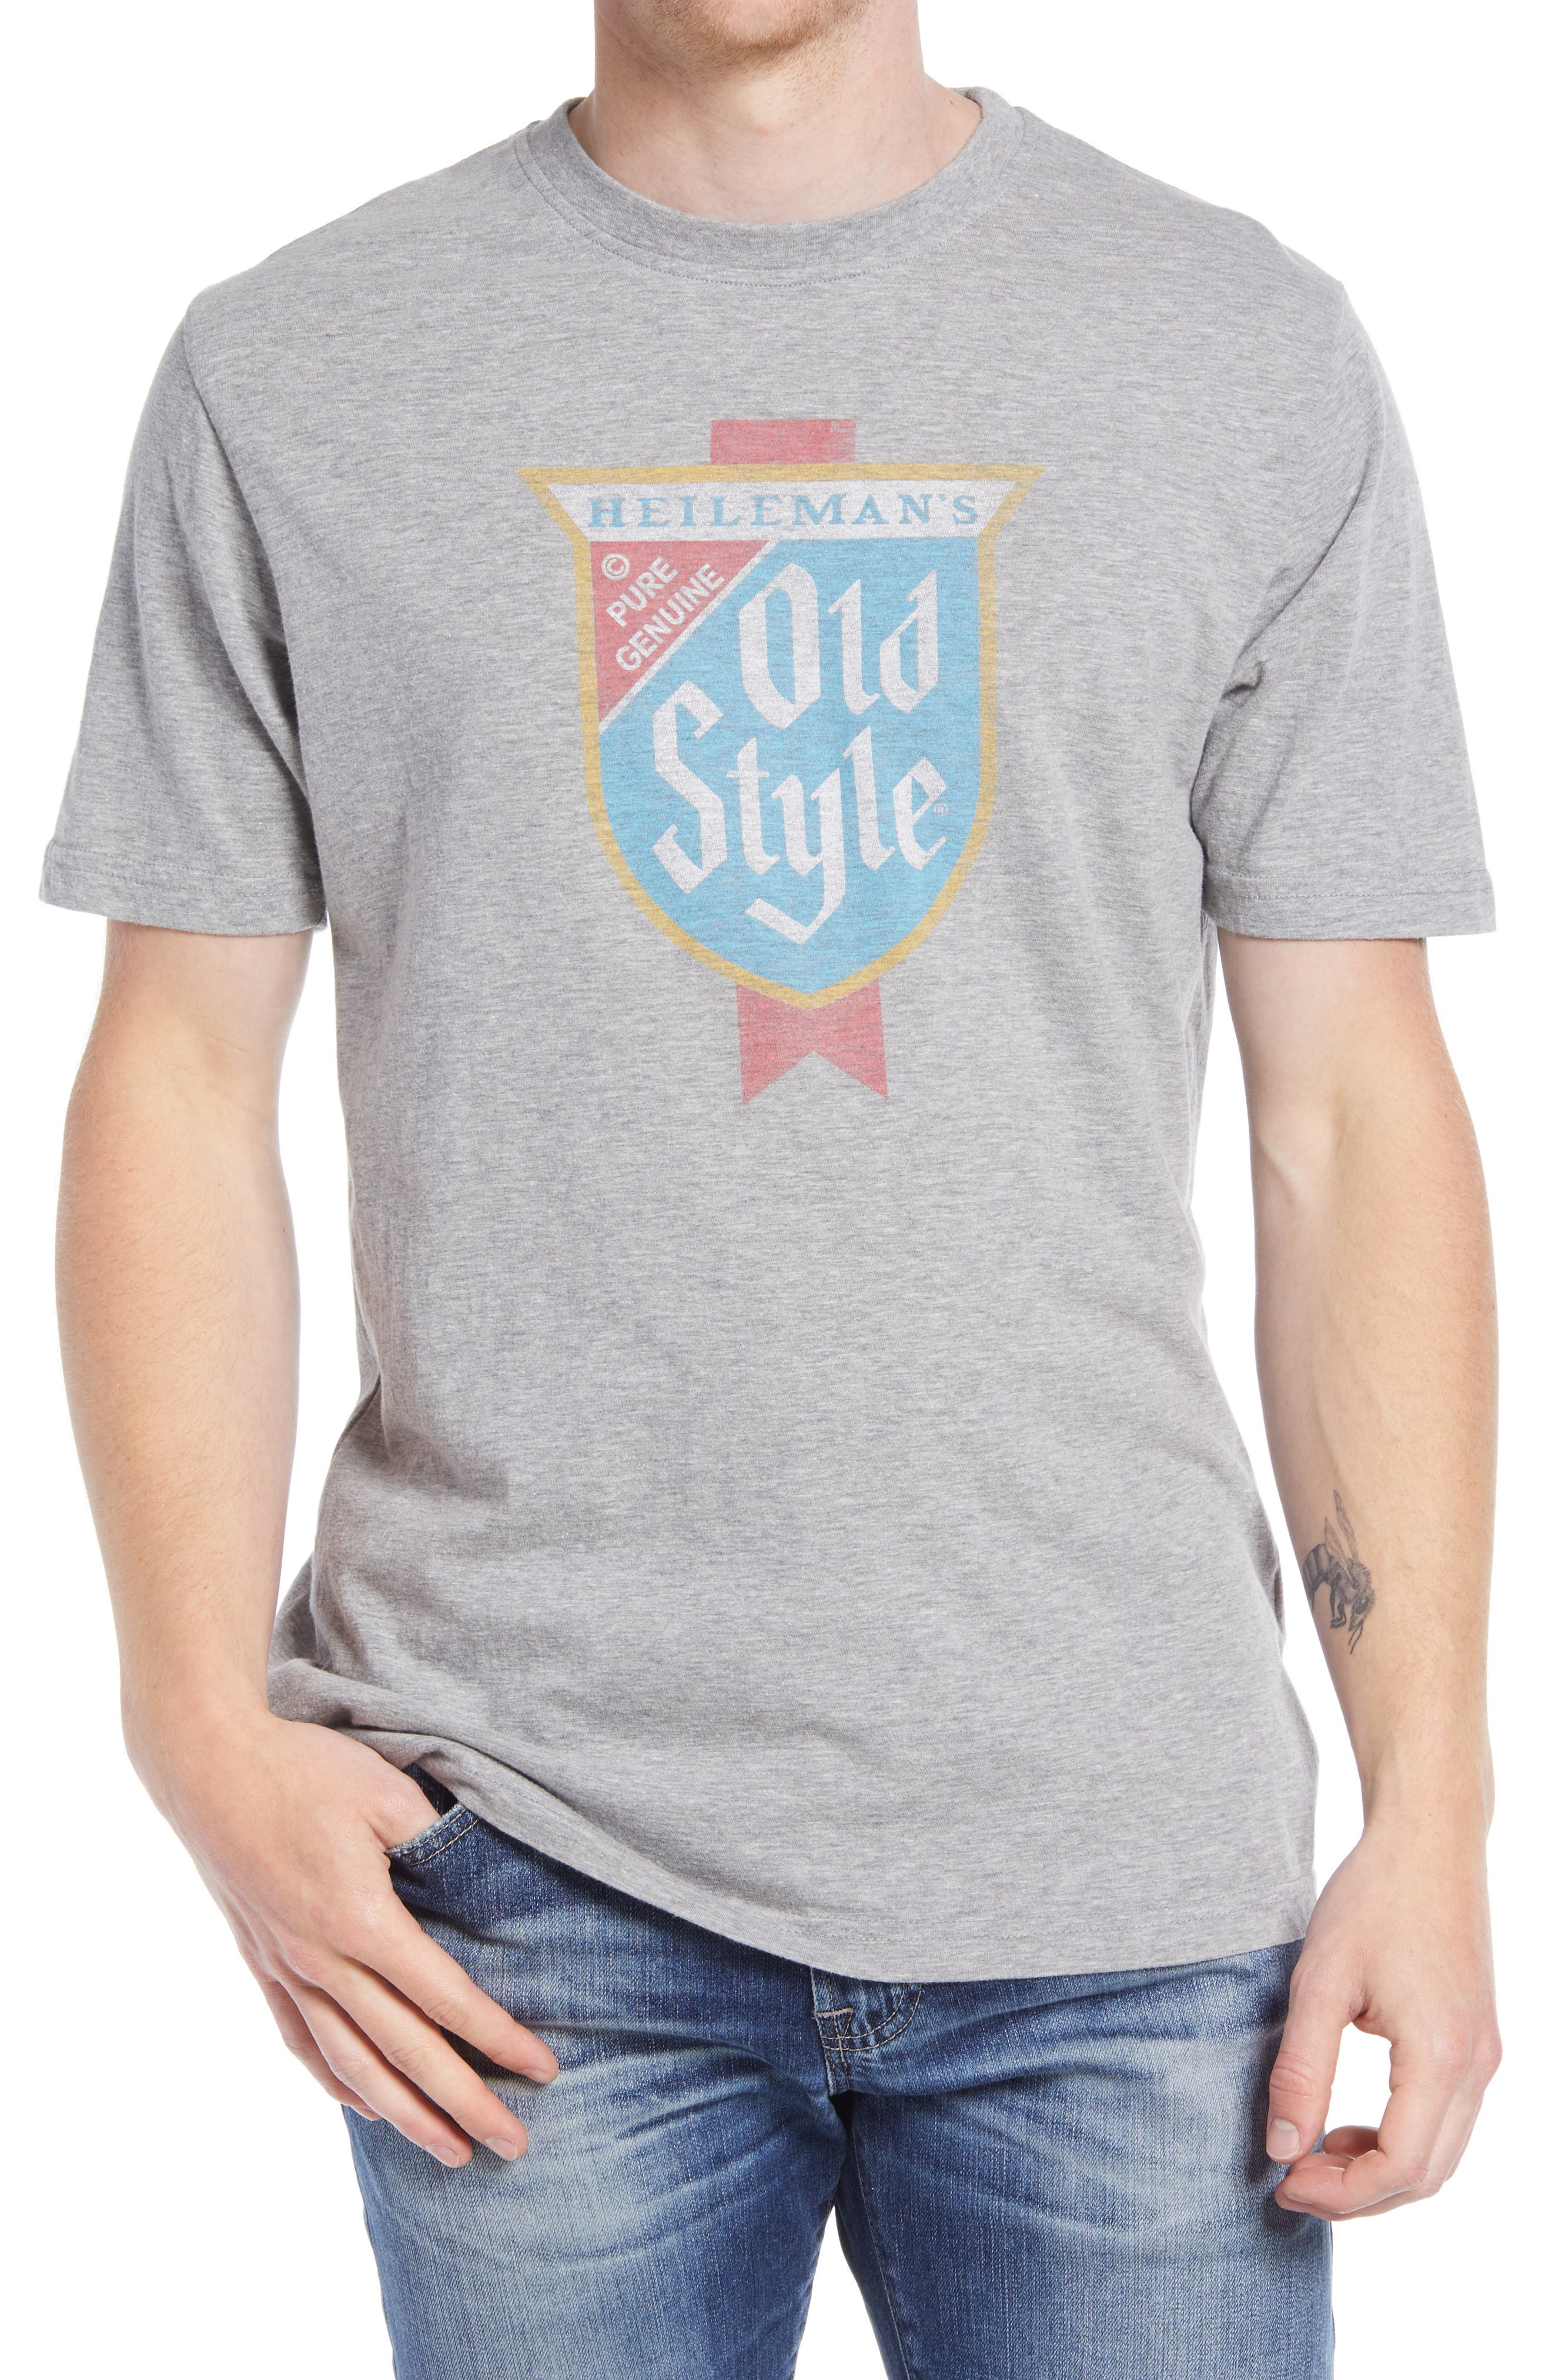 Brass Tacks Old Style Men's Graphic Tee